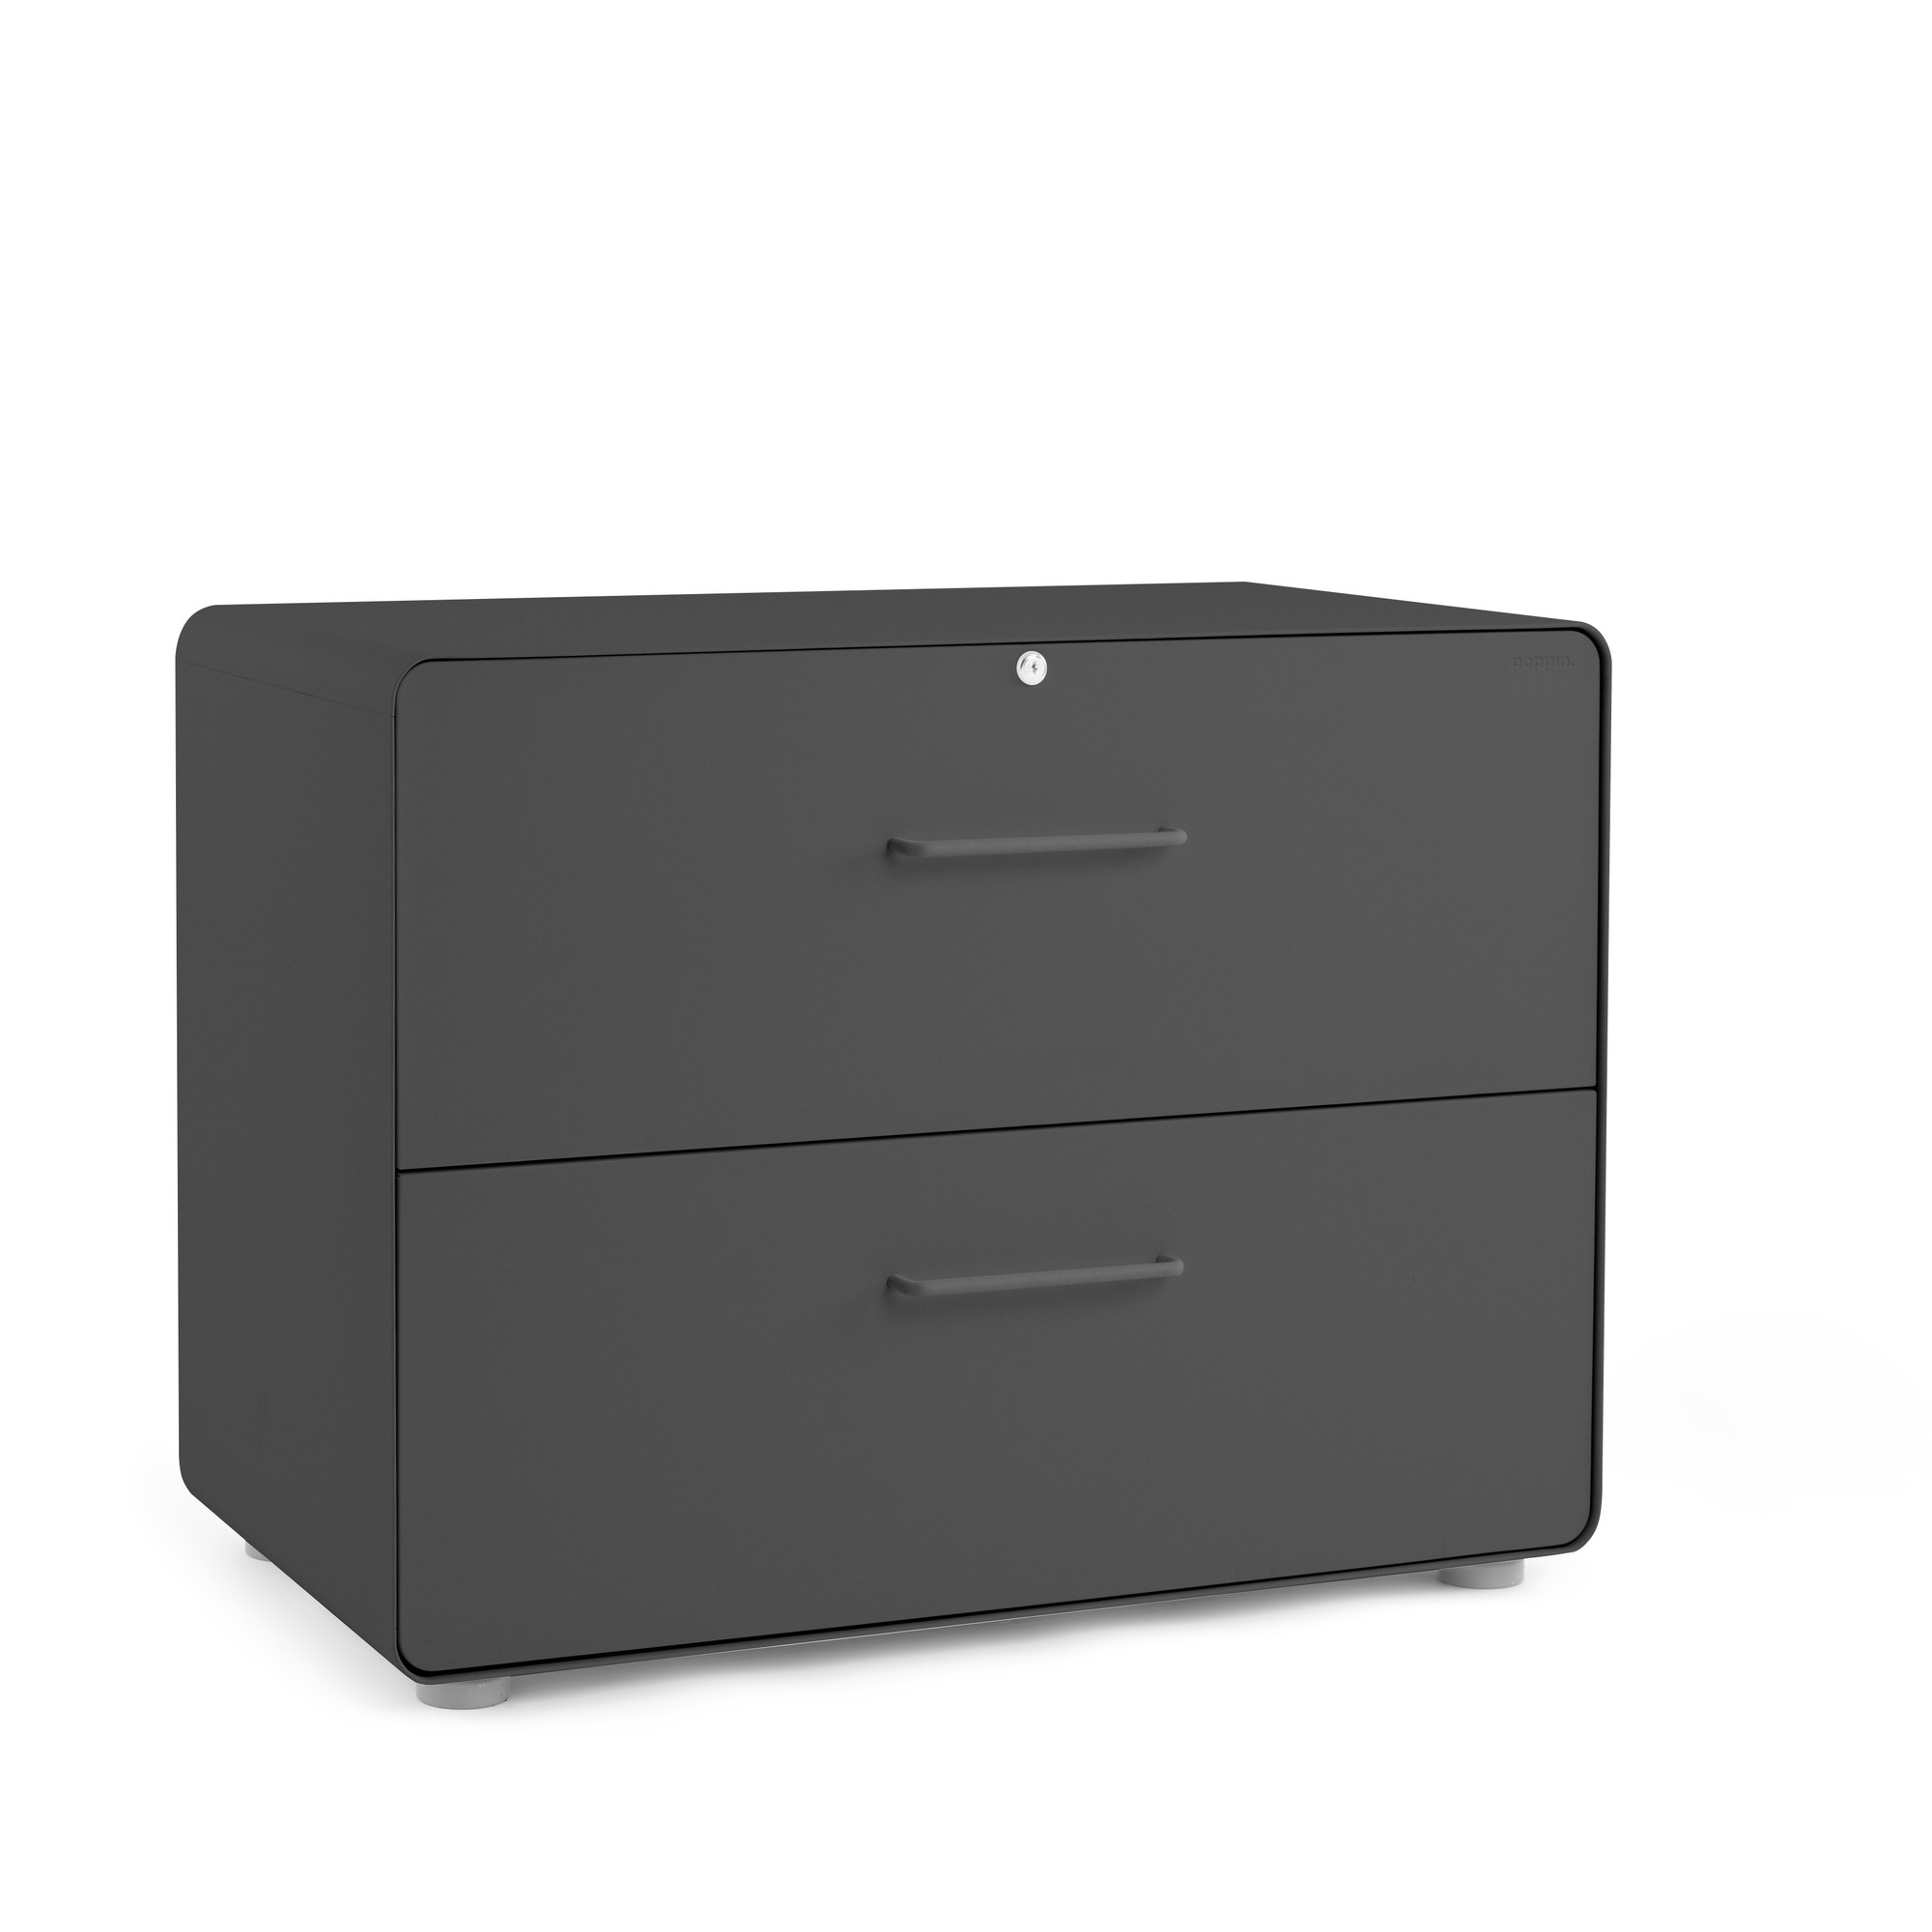 Image of: Charcoal Stow 2 Drawer Lateral File Cabinet File Cabinets Storage Poppin